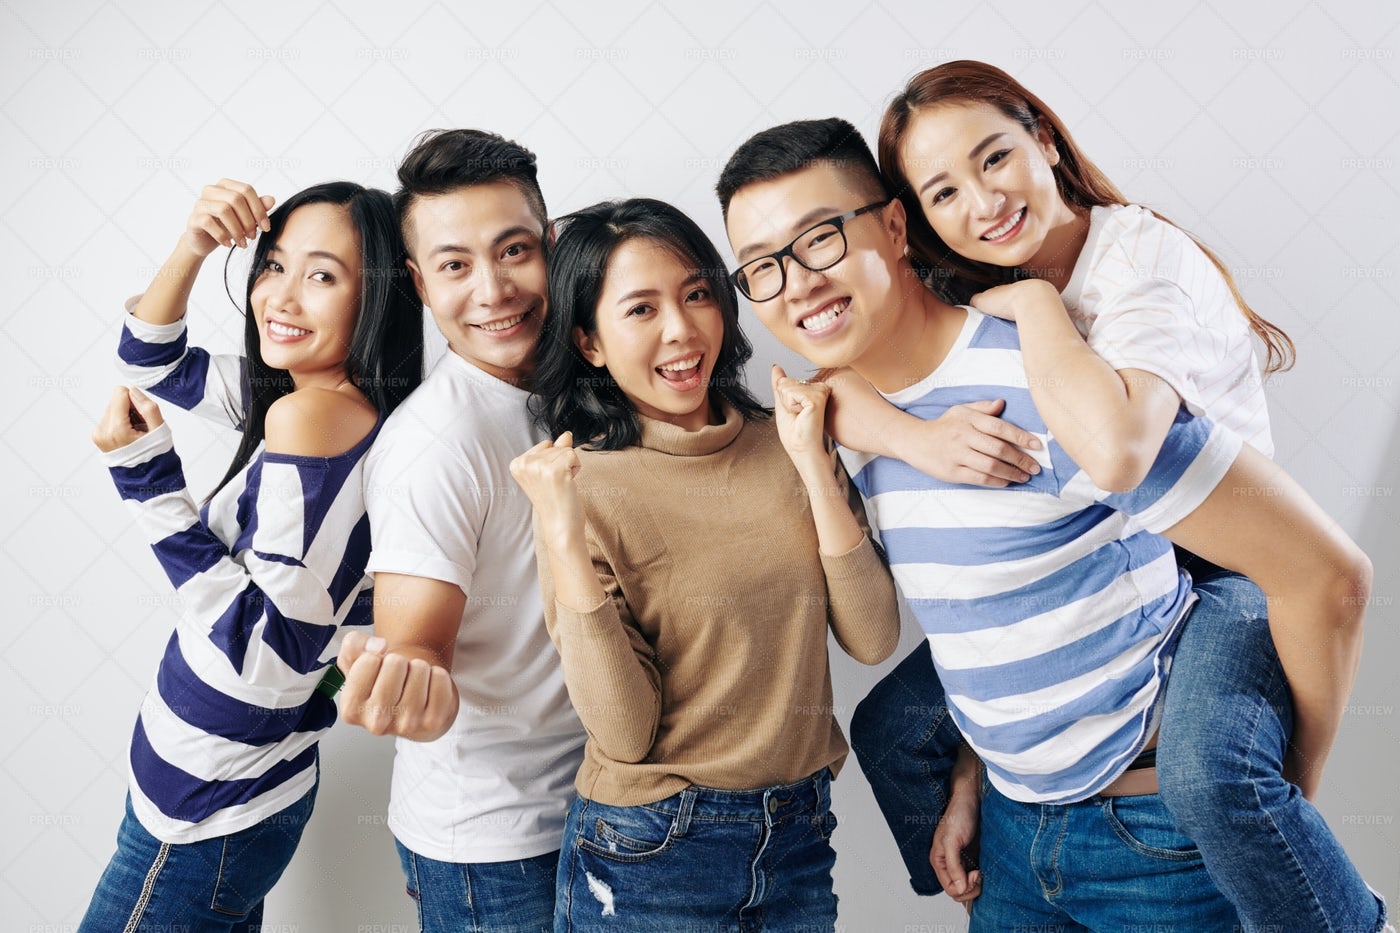 Cheerful Laughing Young Asian Friends: Stock Photos